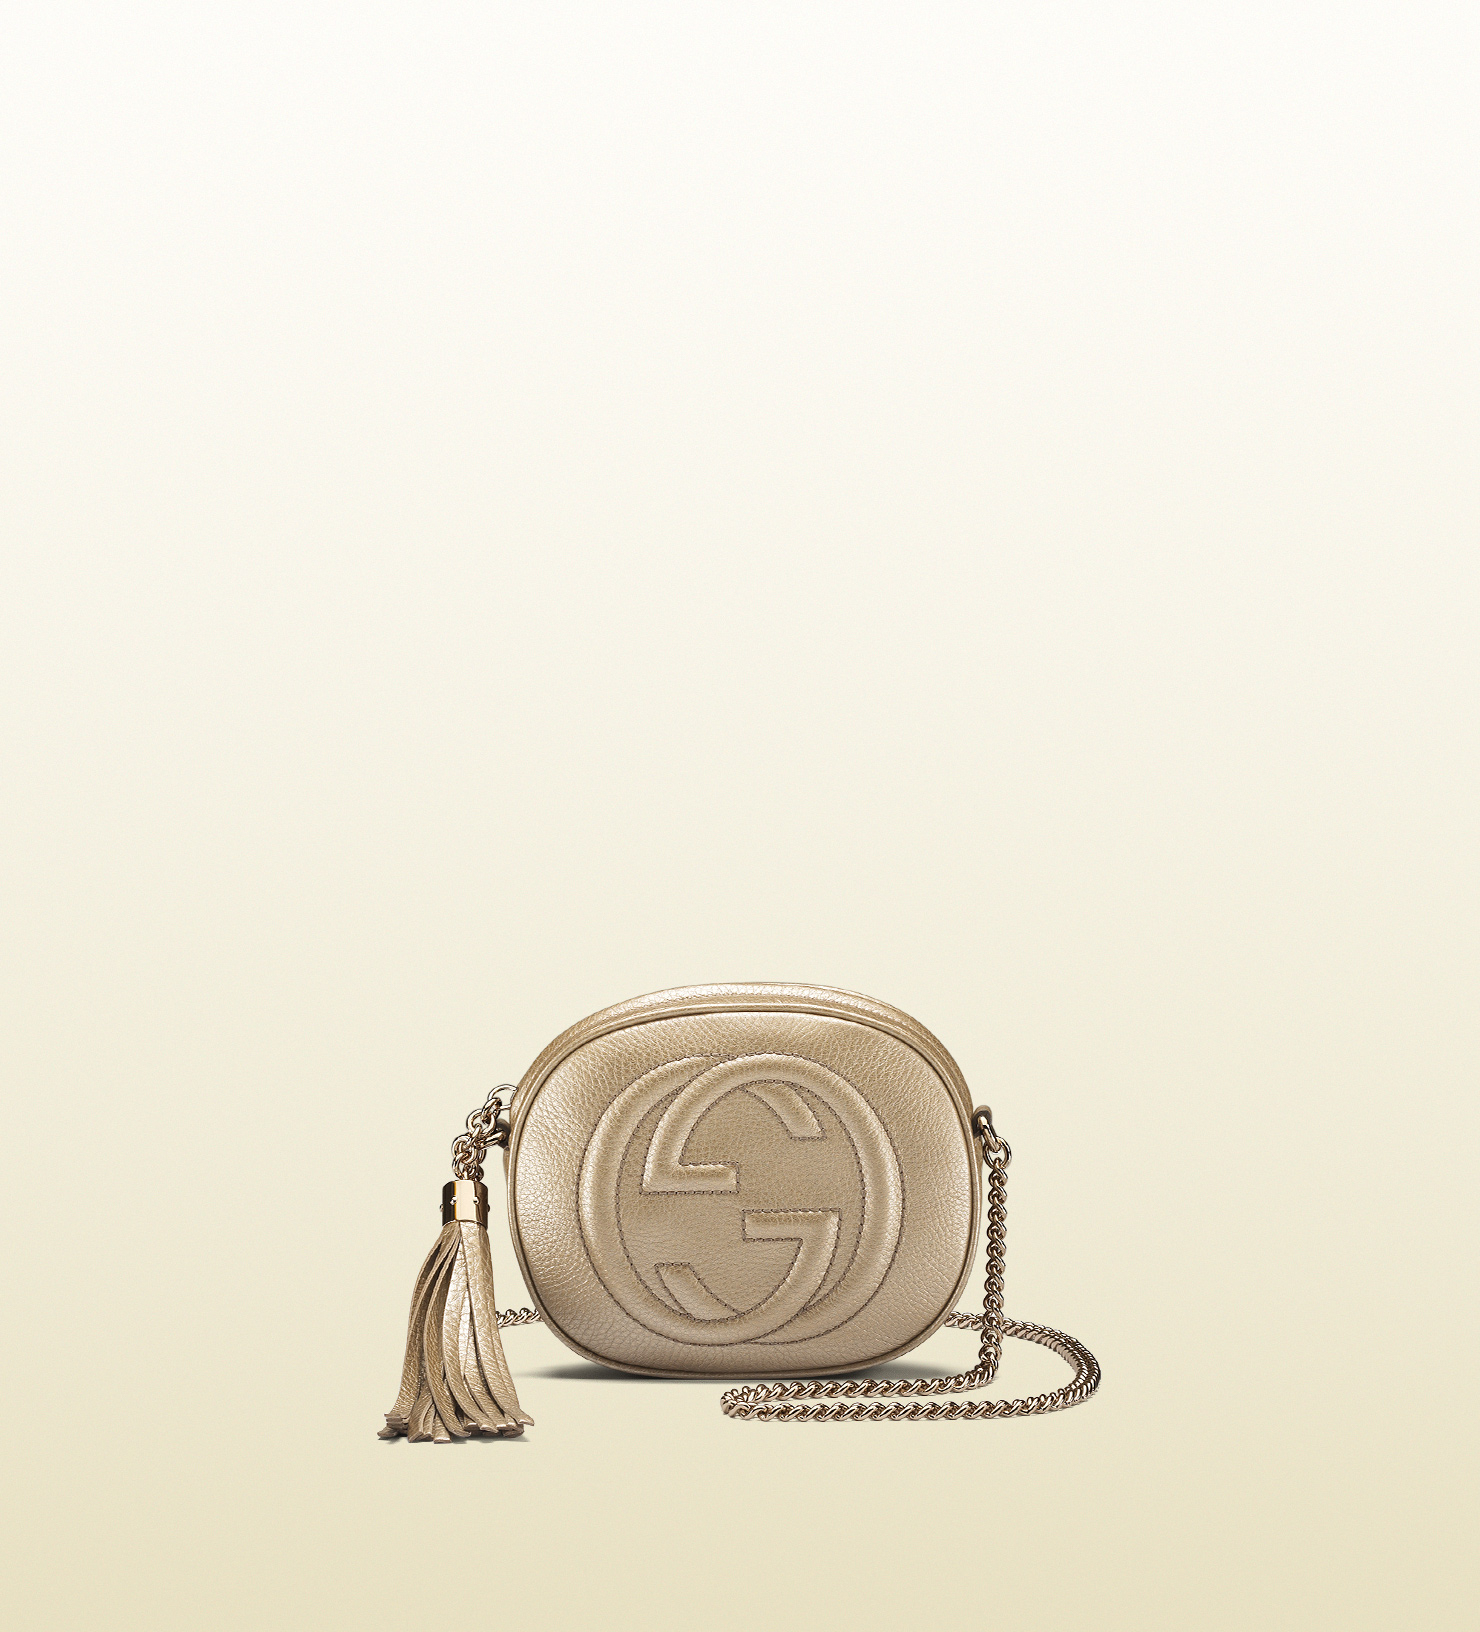 2fe95af9fdf Lyst - Gucci Soho Metallic Leather Mini Chain Bag in Natural